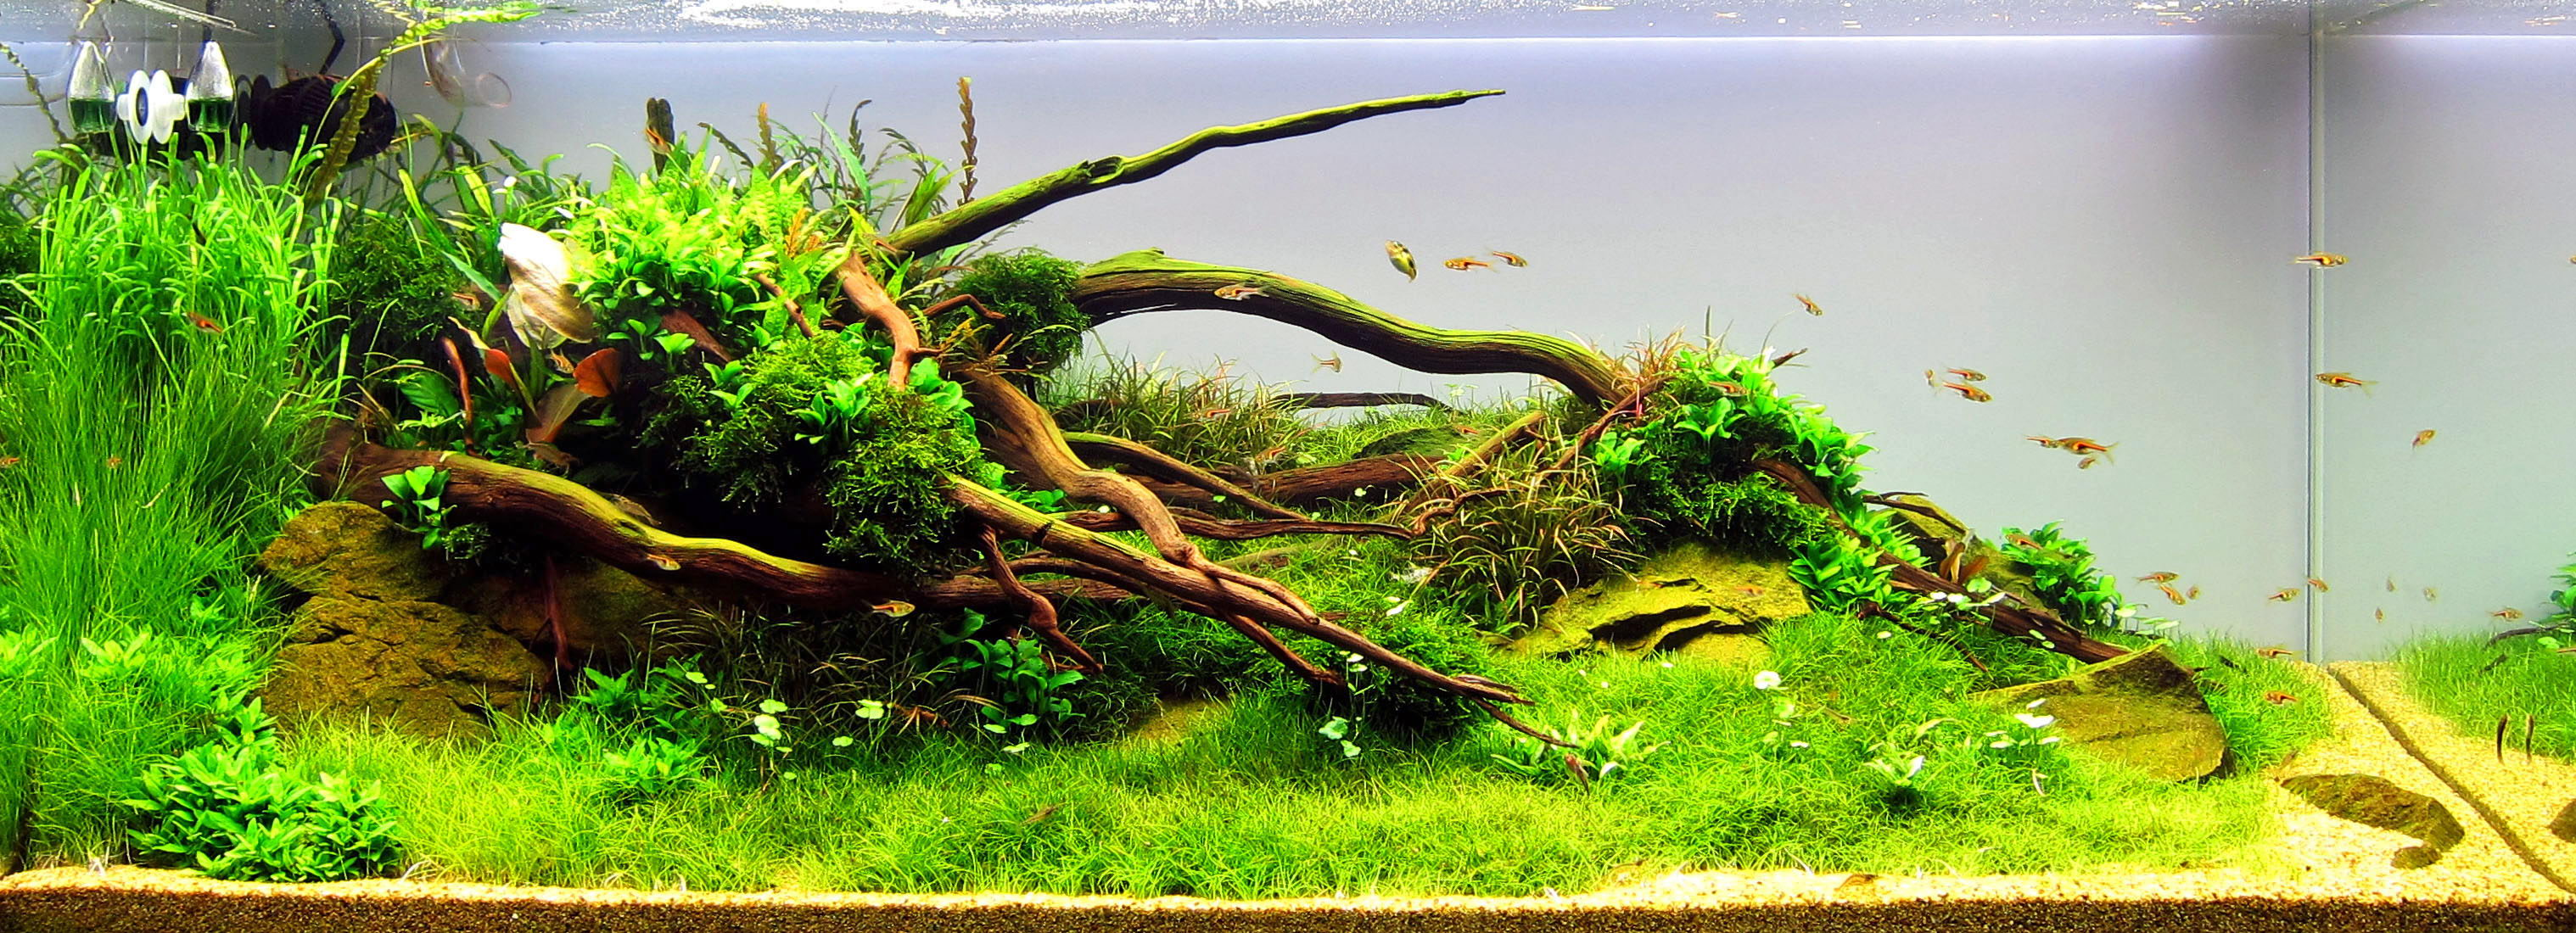 Nutrients for a planted tank aqua rebell for Plante aquarium